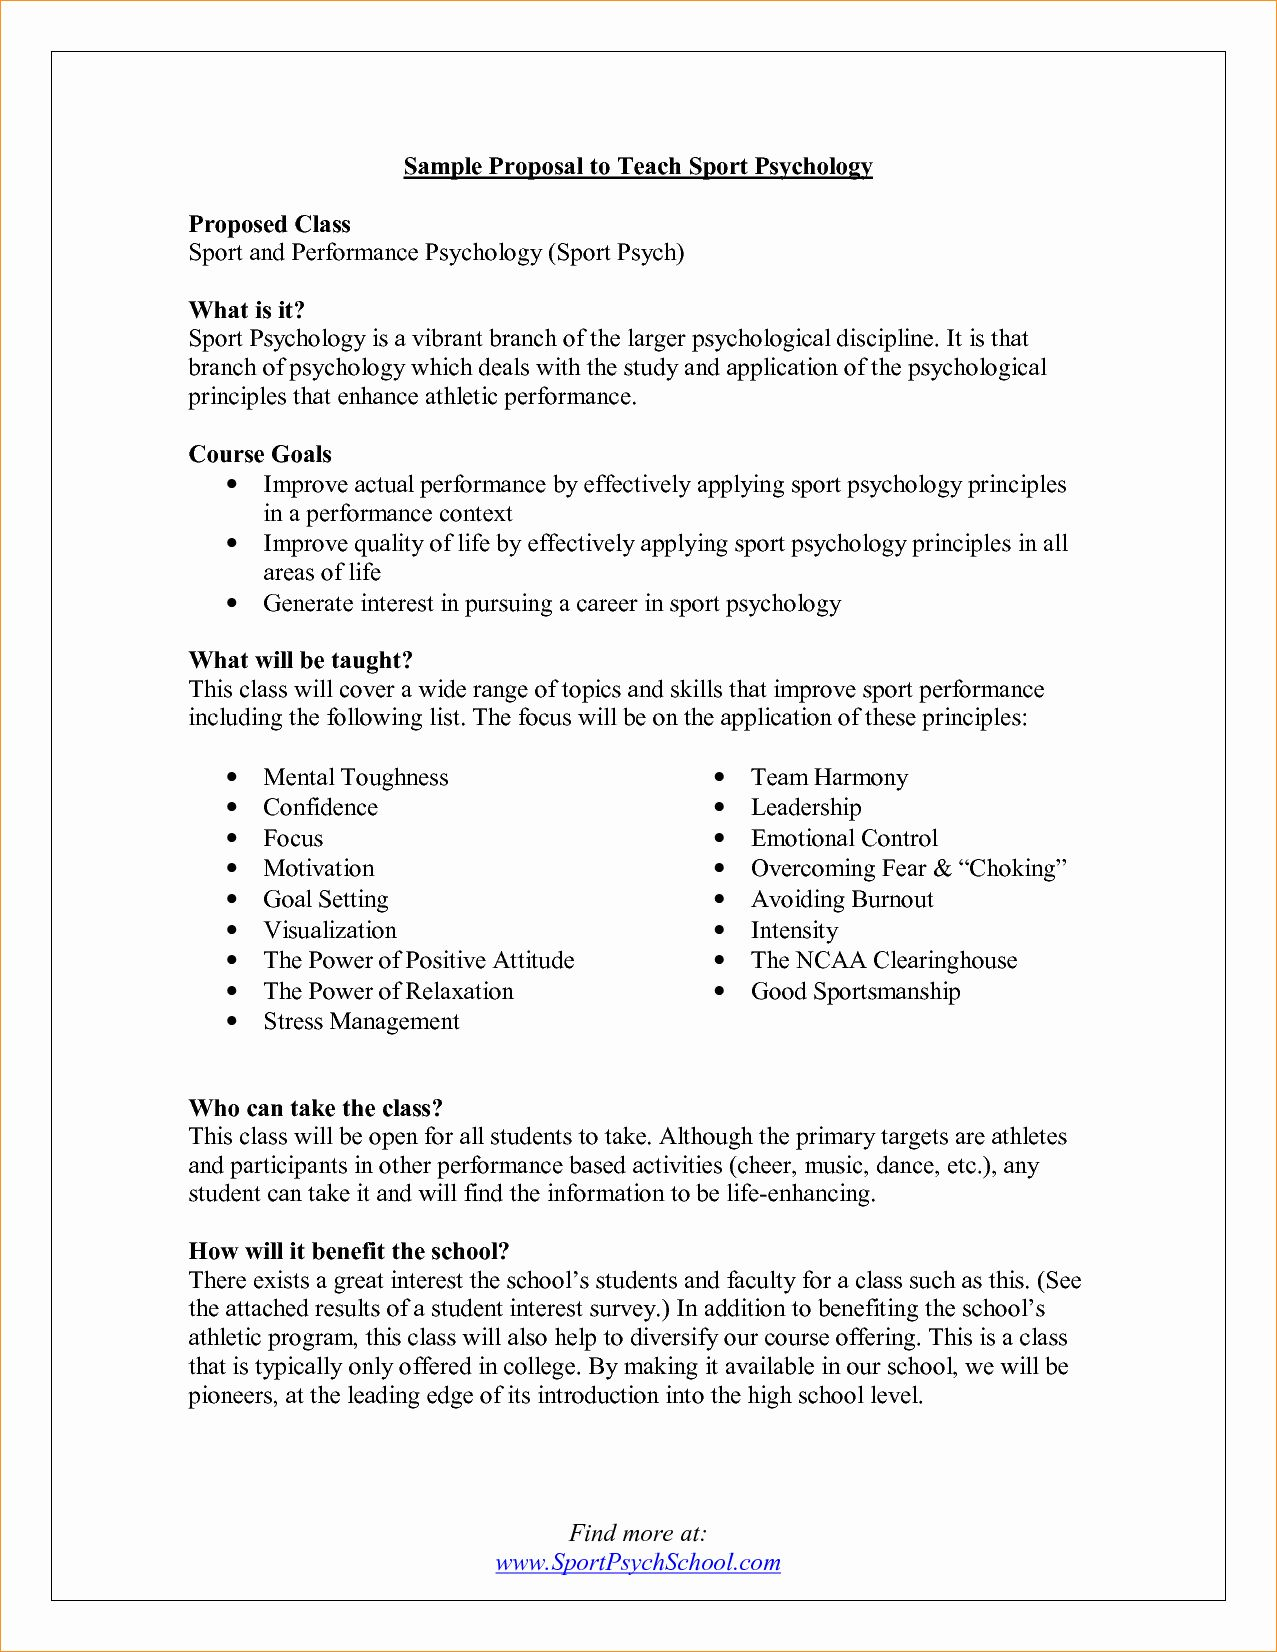 New Position Proposal Template Beautiful Sample Proposal Letter For A New Job Position In 2021 Proposal Templates Event Proposal Template Proposal Letter